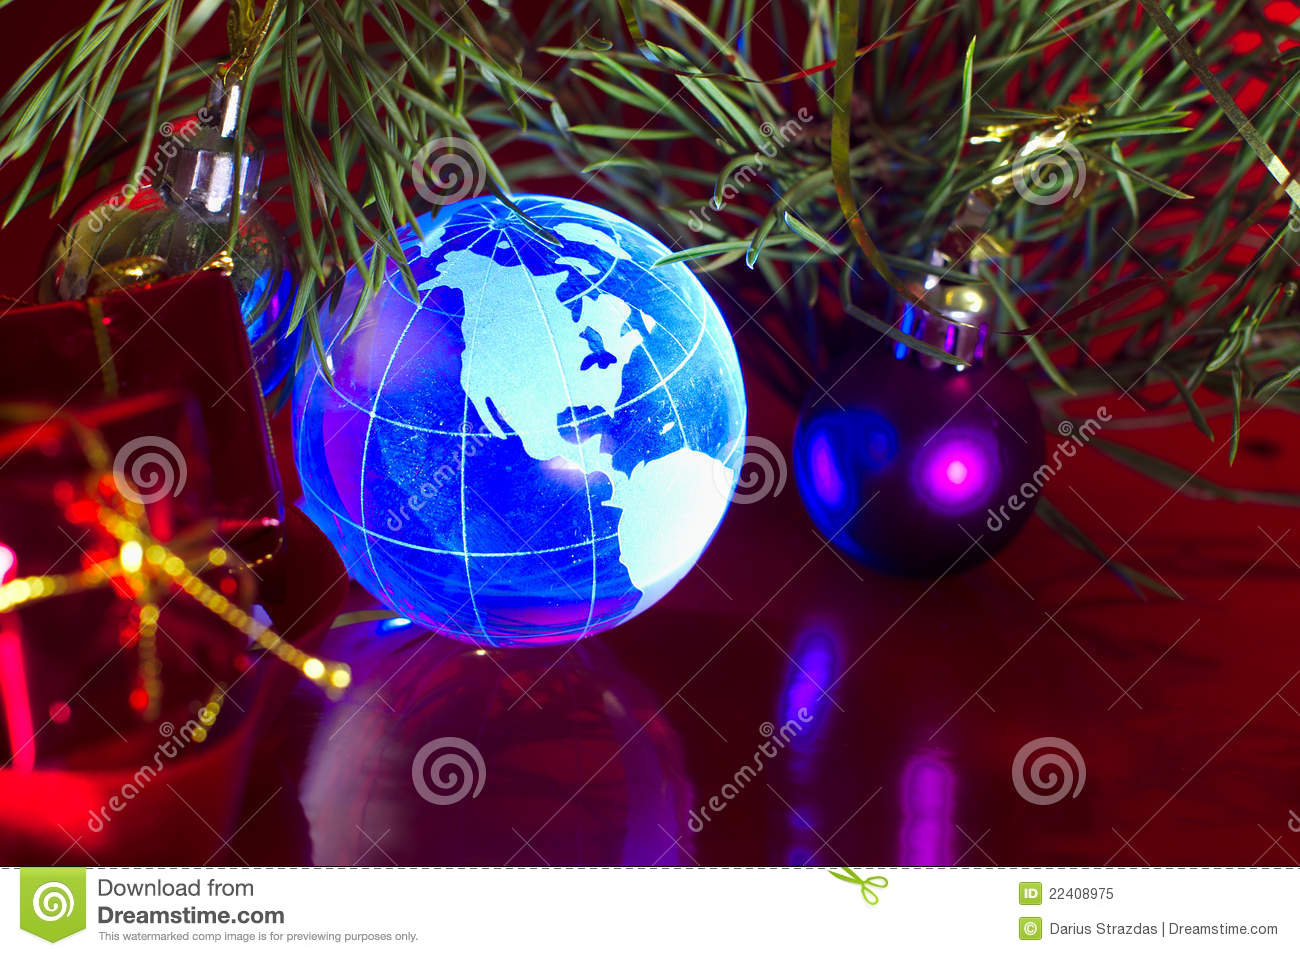 World globe christmas ornaments - Earth Globe North America Christmas Background Royalty Free Stock Photo